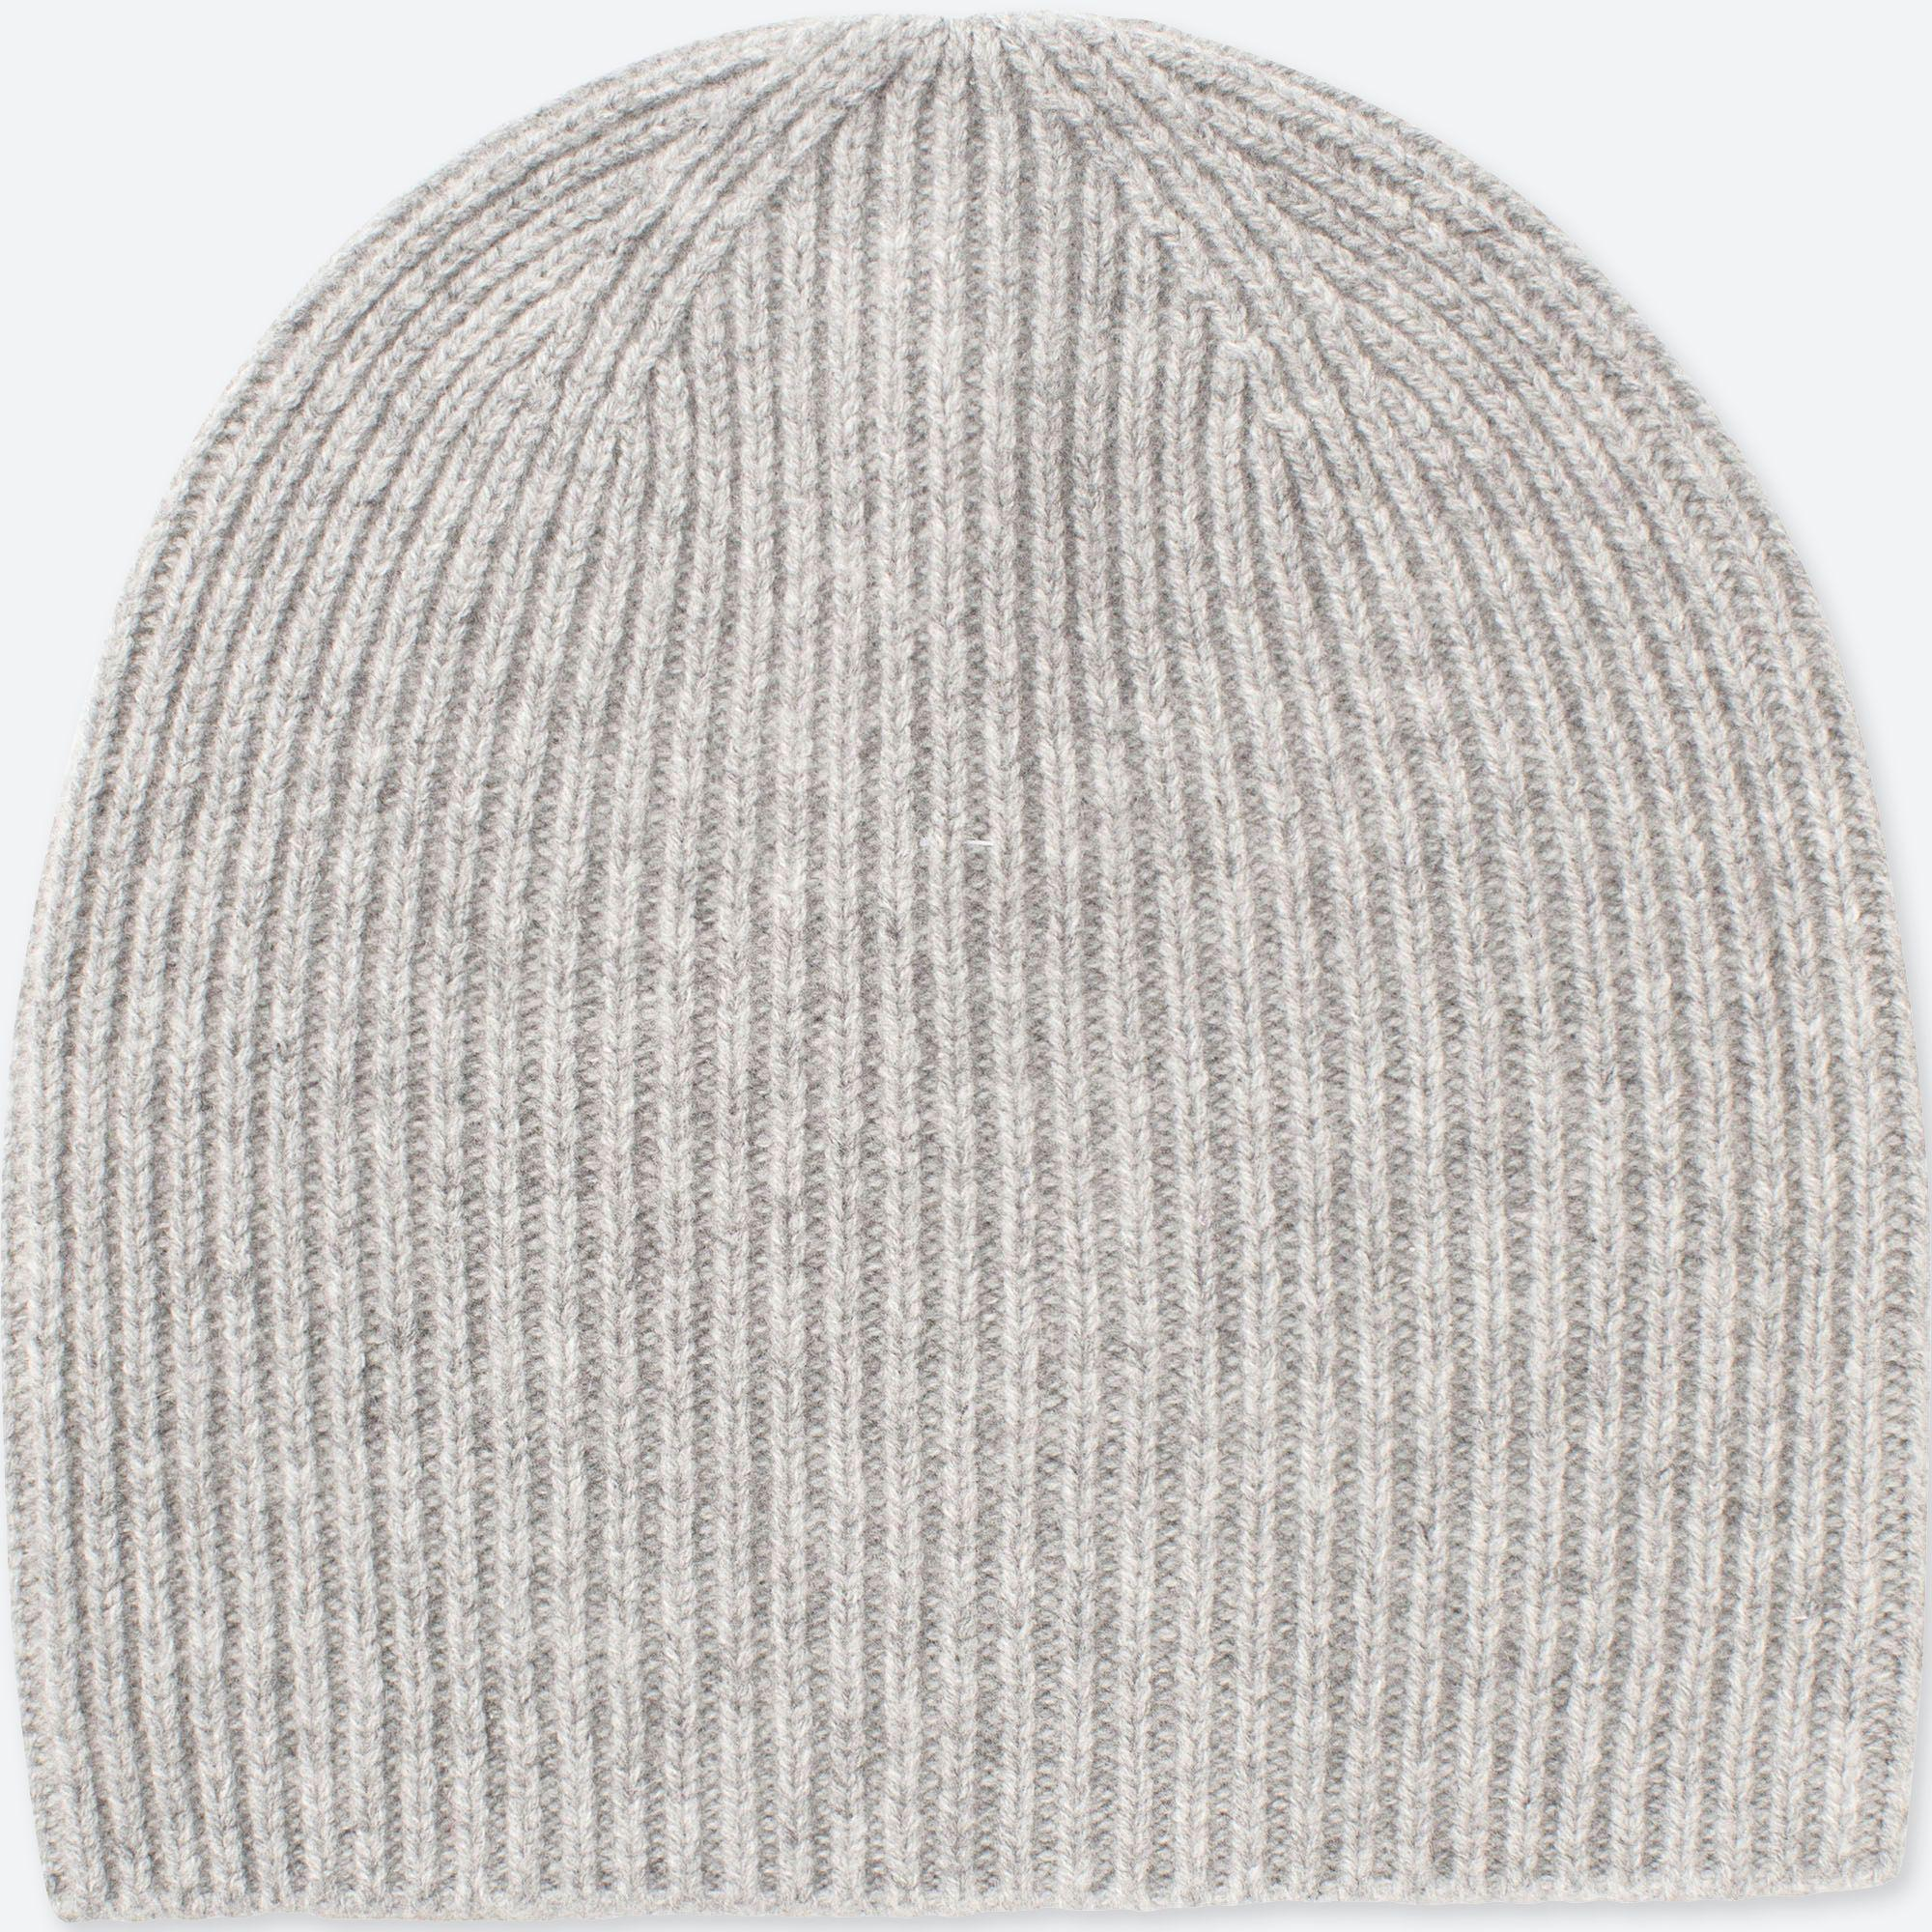 80a086e1dd62a Uniqlo Cashmere Knitted Beanie in Gray - Lyst